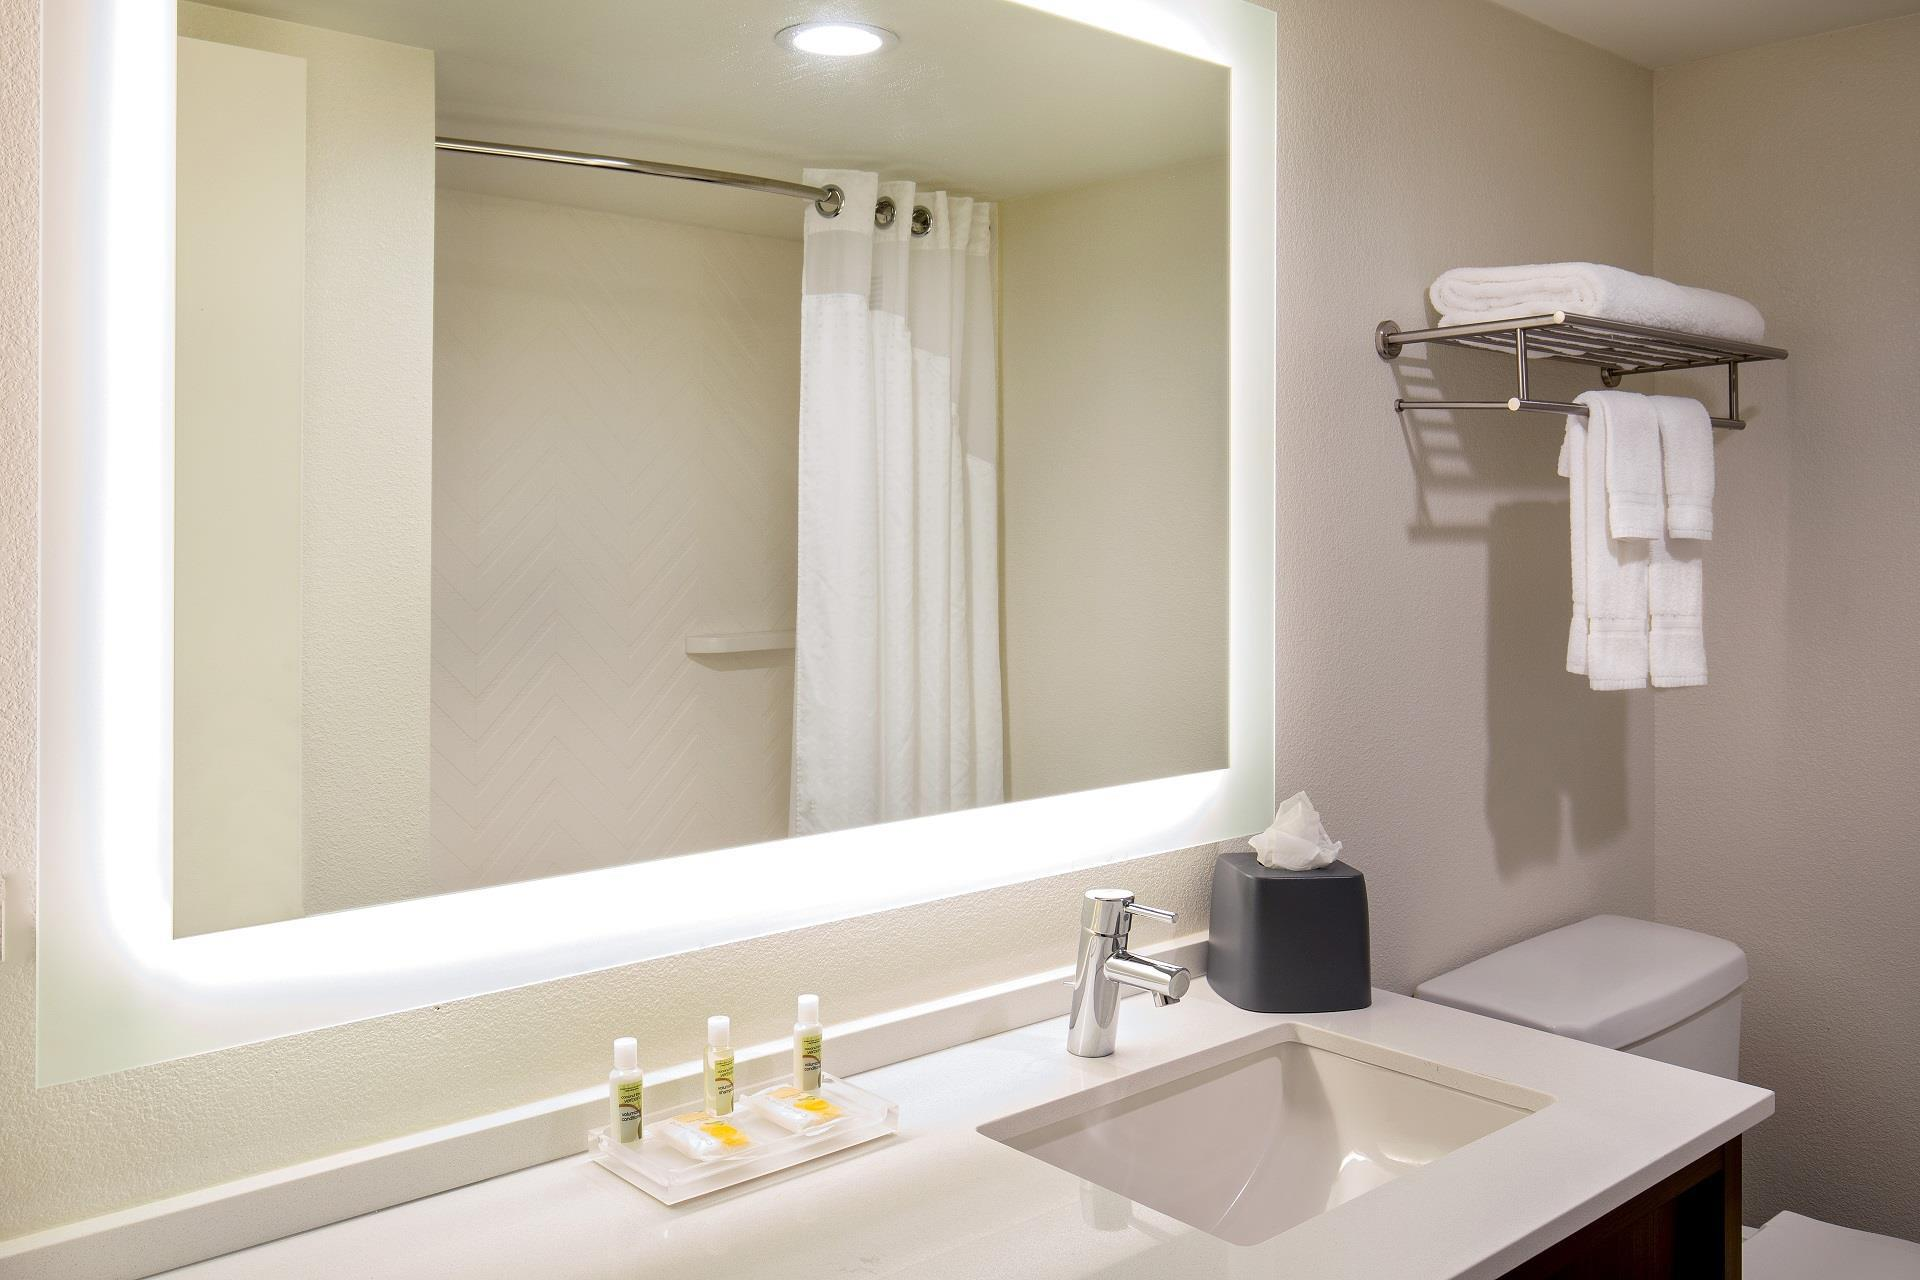 olive green bathroom decor ideas for your luxury bathroom.htm meetings and events at holiday inn newport news hampton  newport  holiday inn newport news hampton